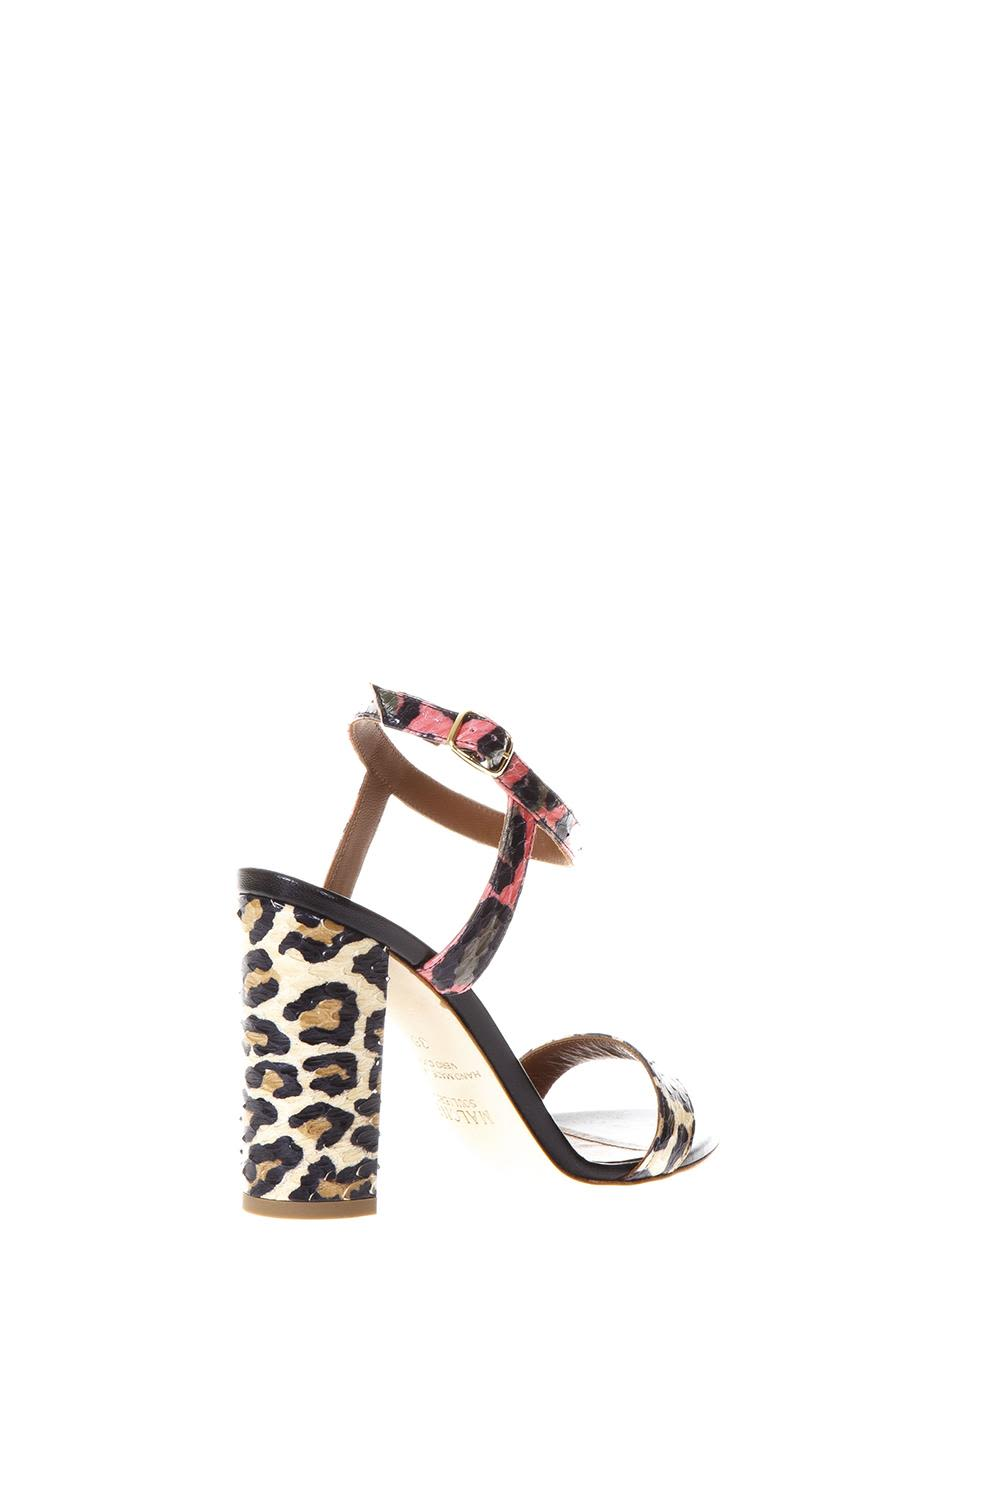 MALONE SOULIERS Ladida 1 Sandals Leopard Style Best Prices Cheap Online Outlet With Mastercard Outlet Explore Sale Hot Sale Clearance View eqWUs